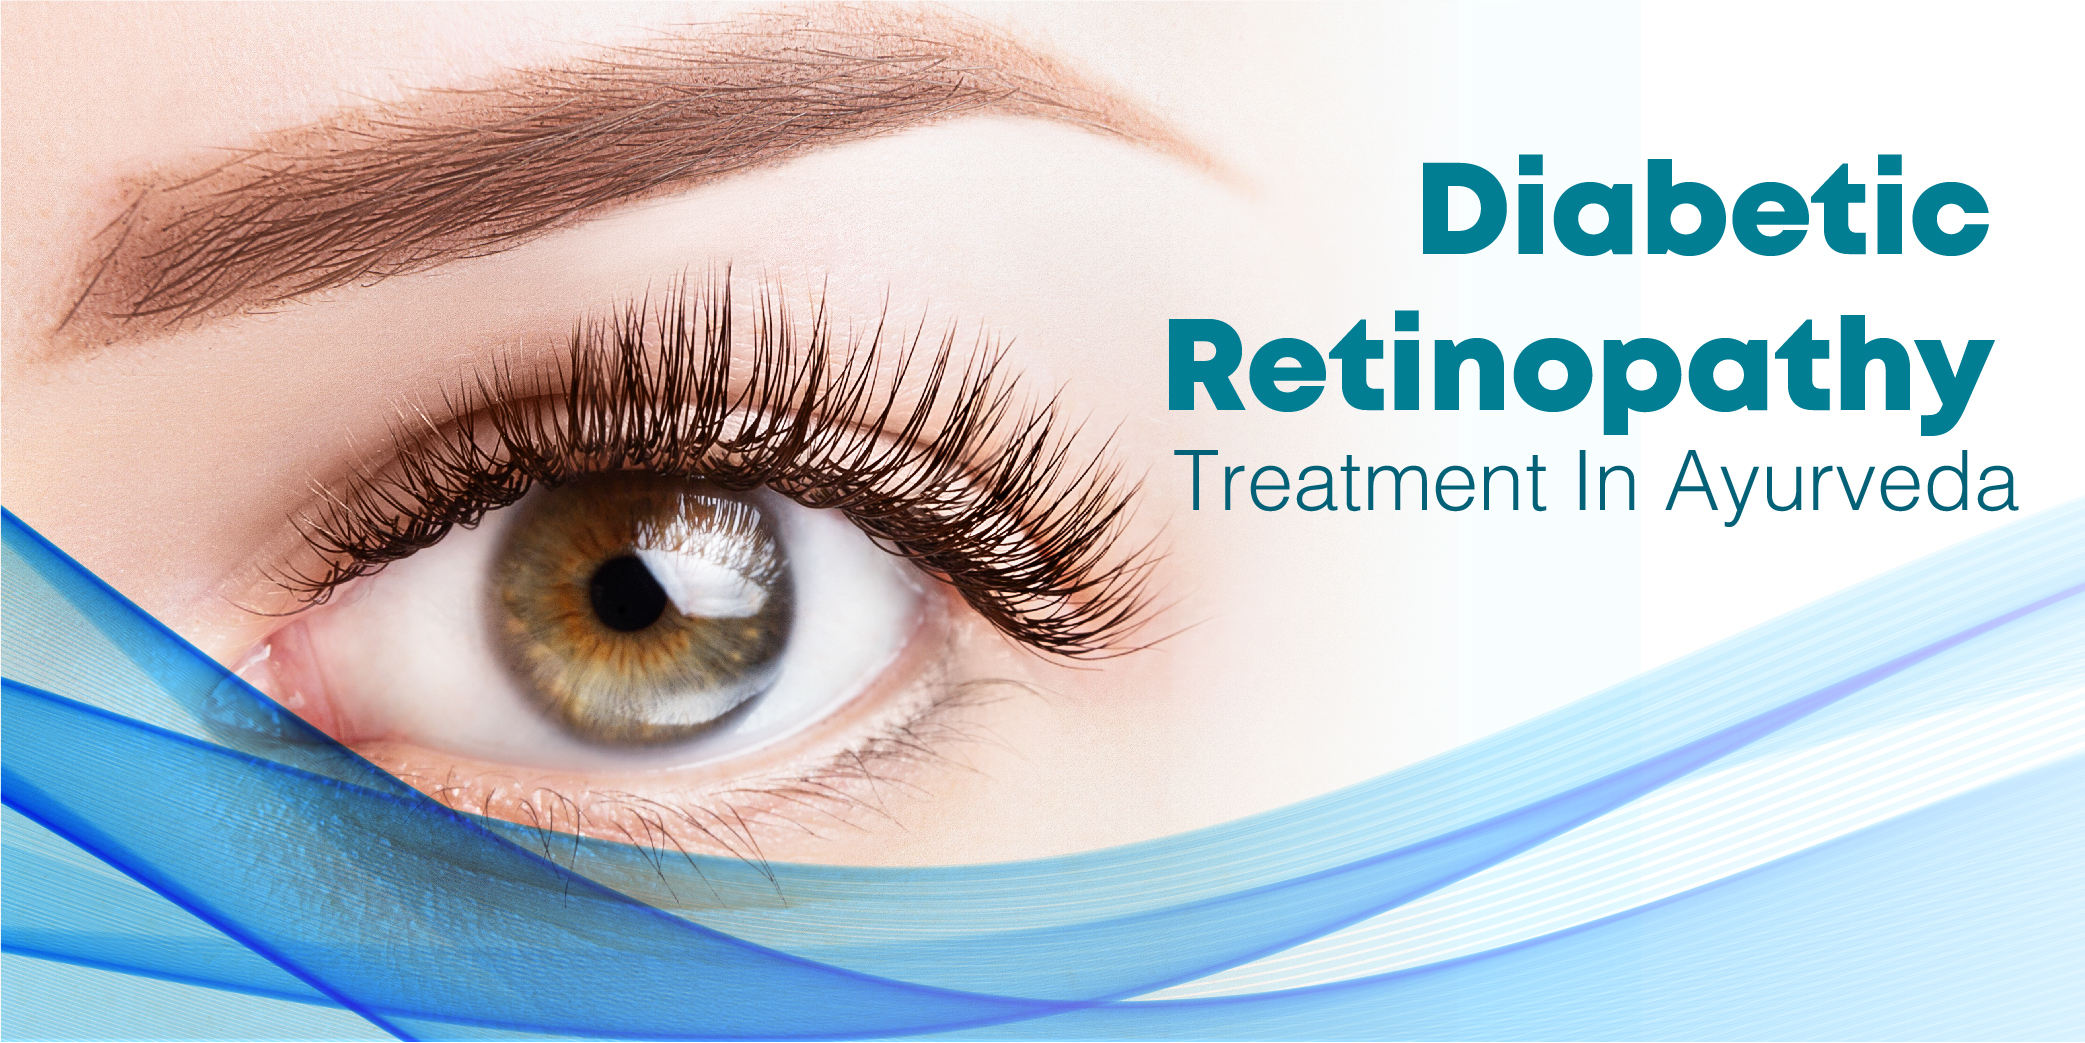 Diabetic Retinopathy vision loss Treatment In Ayurveda Normal Vision Blurred Vision dark floaters regular eye check-up eye issues